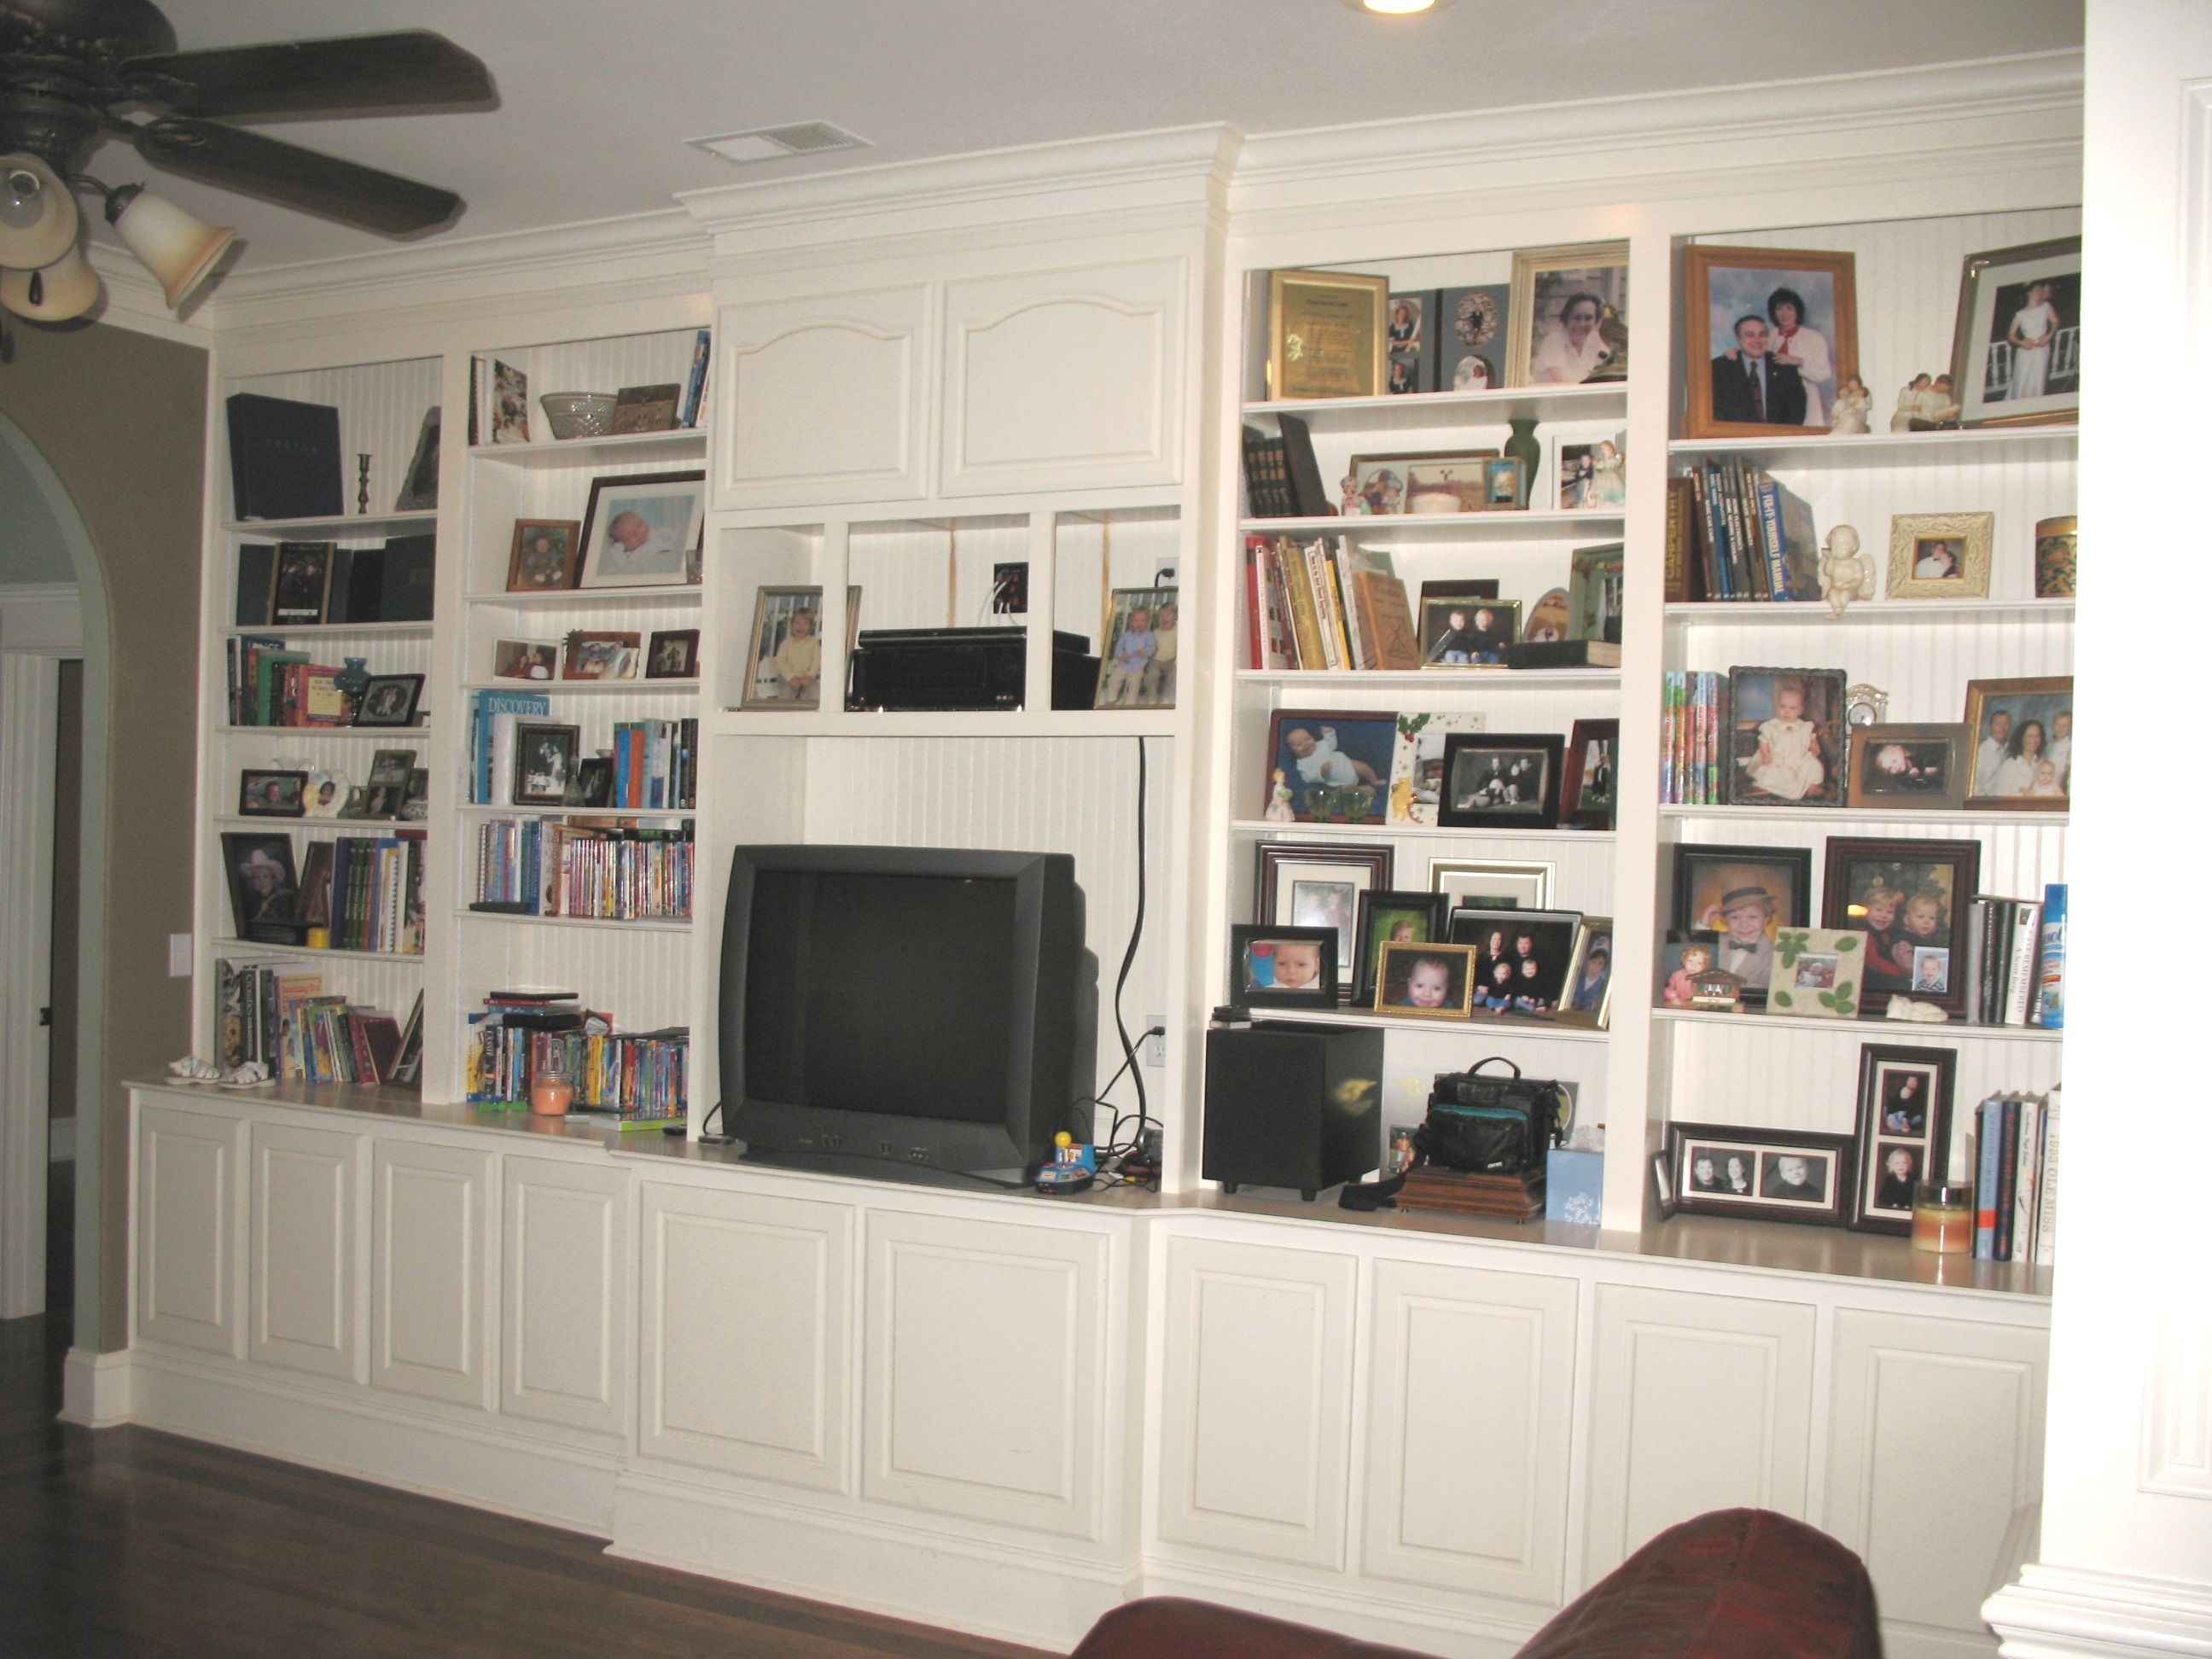 spaces advanced design amazing livings for shelving within small room living bewitching shelves environments bookshelf